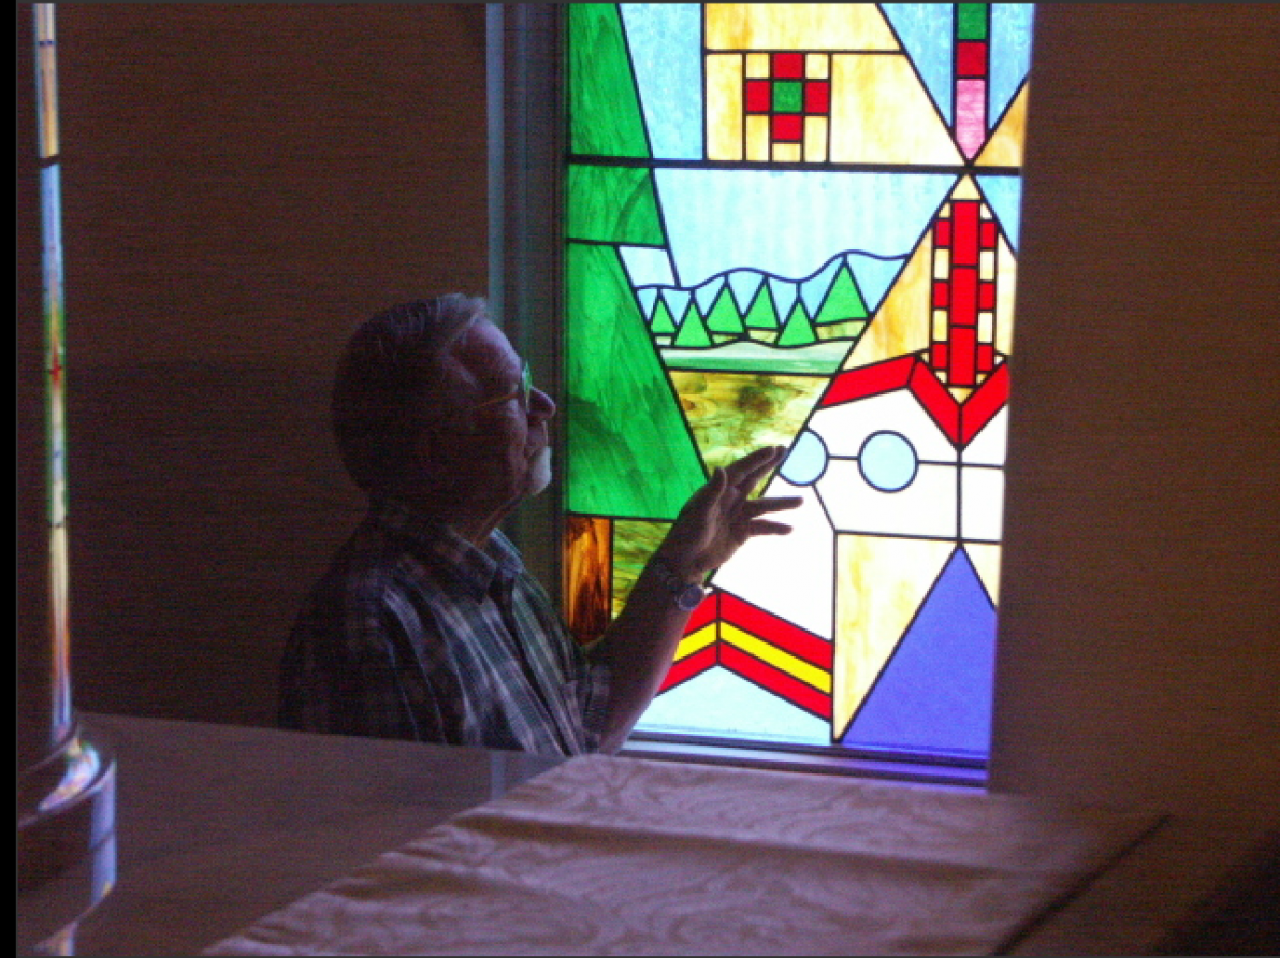 Fr. Herve Valle with his Tipi Window